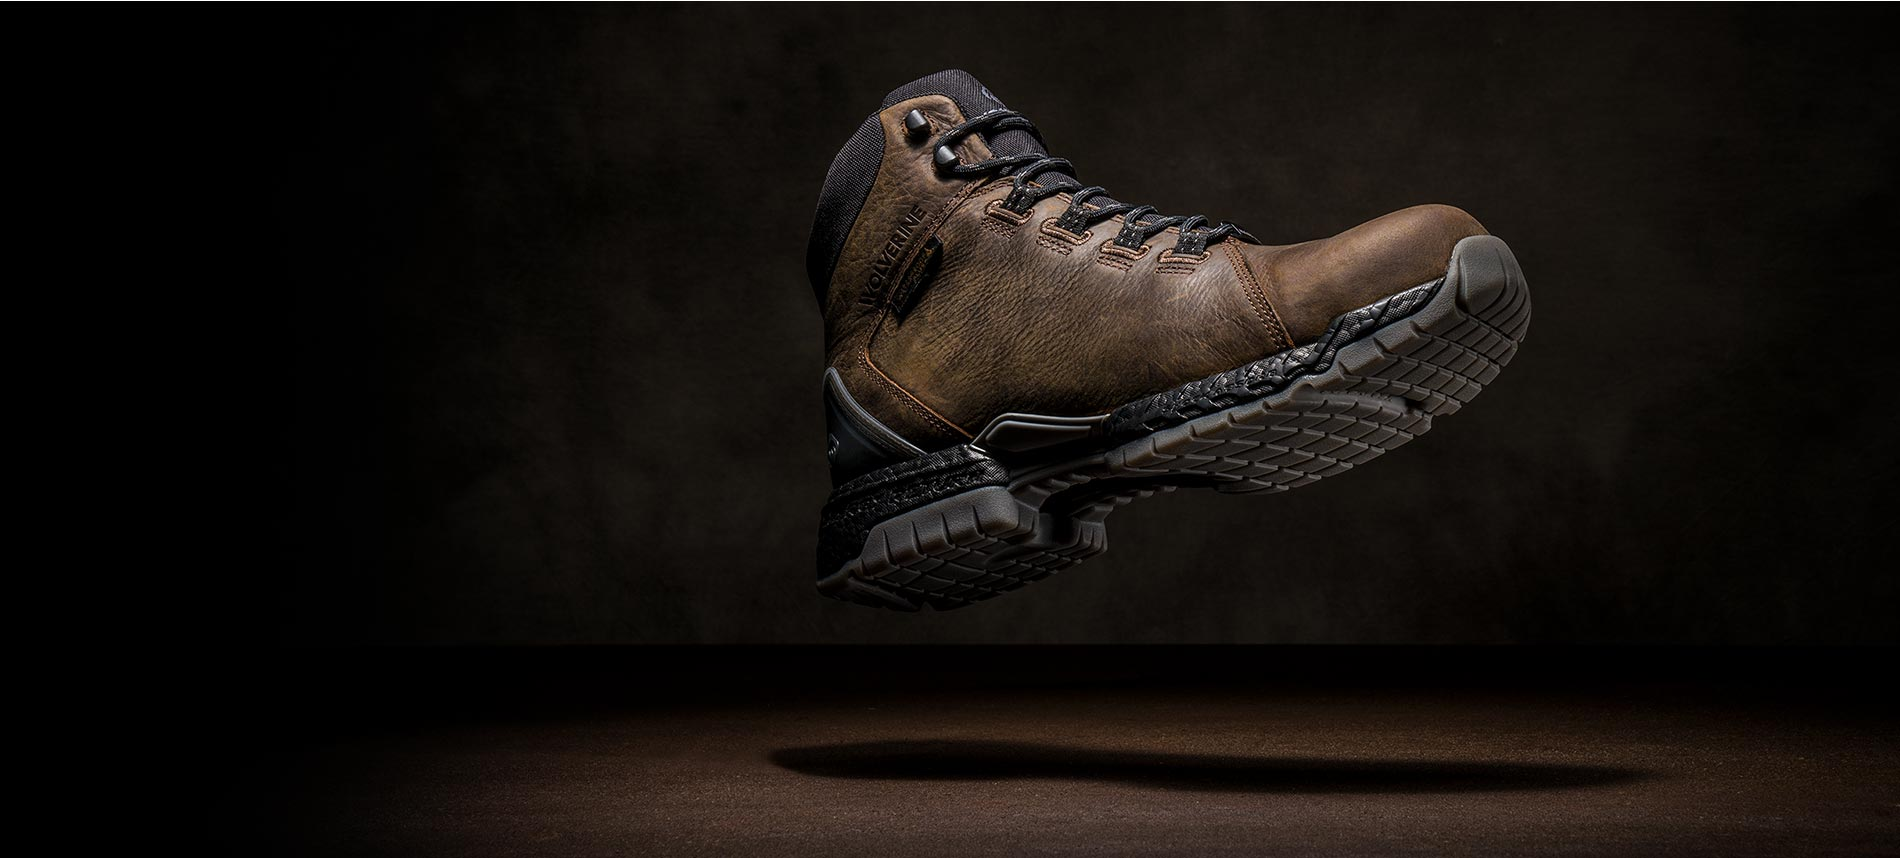 Official Wolverine Com Tough Work Boots Shoes Clothing